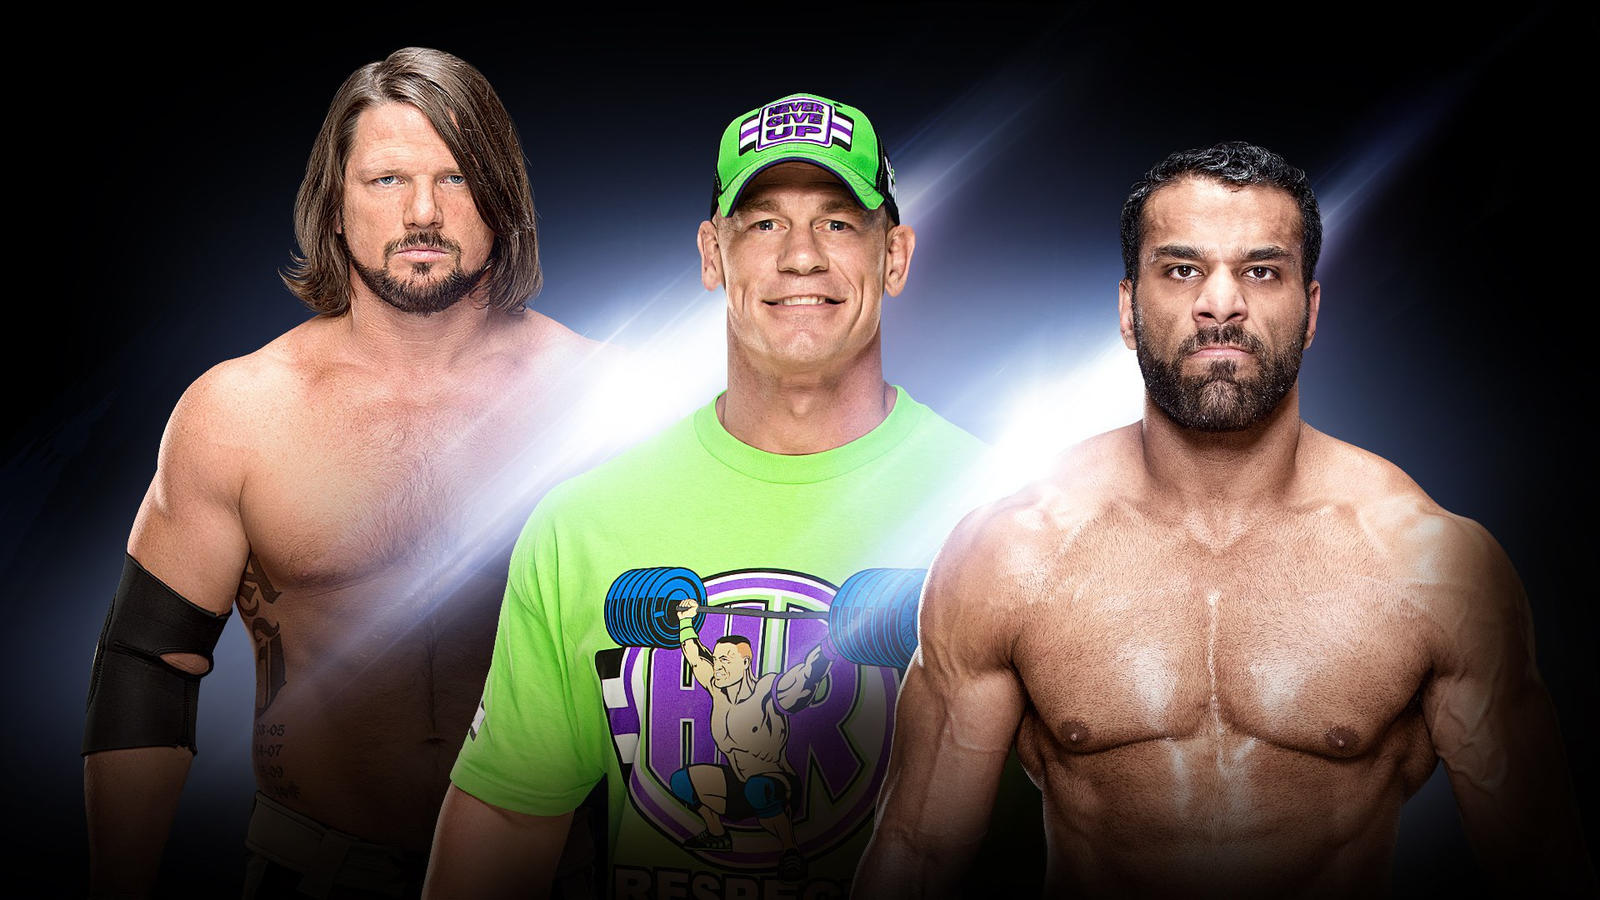 John Cena vs AJ Styles in the main event